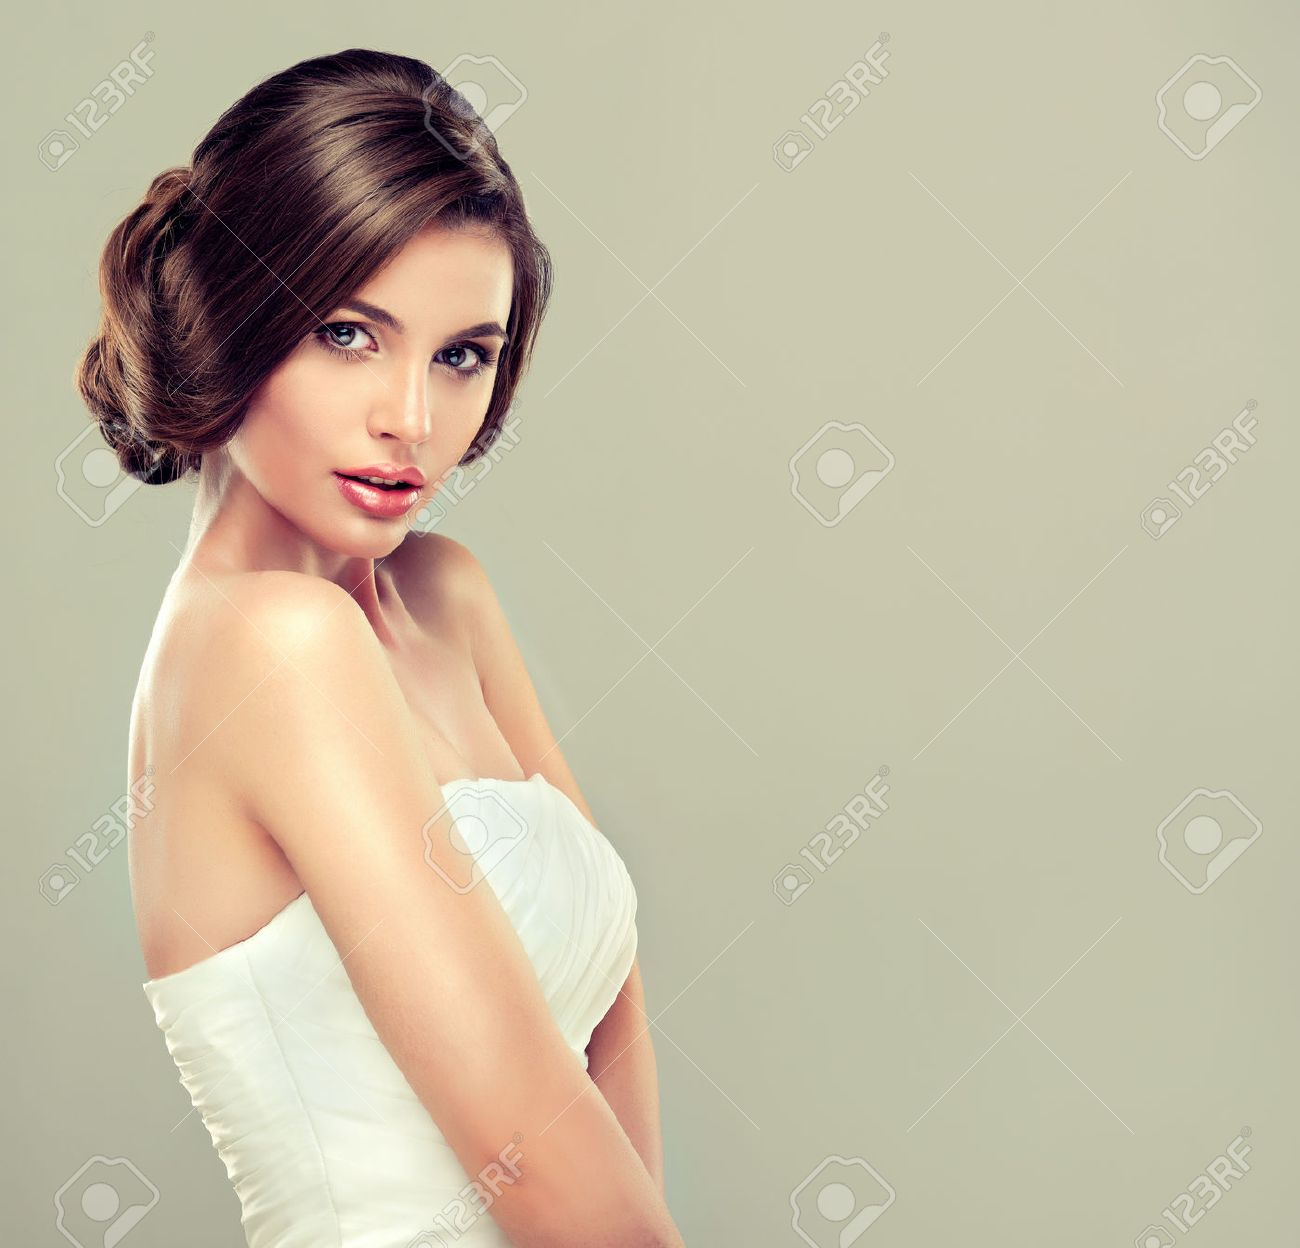 Girl Bride In Wedding Dress With Elegant Hairstyle. Stock Photo ...